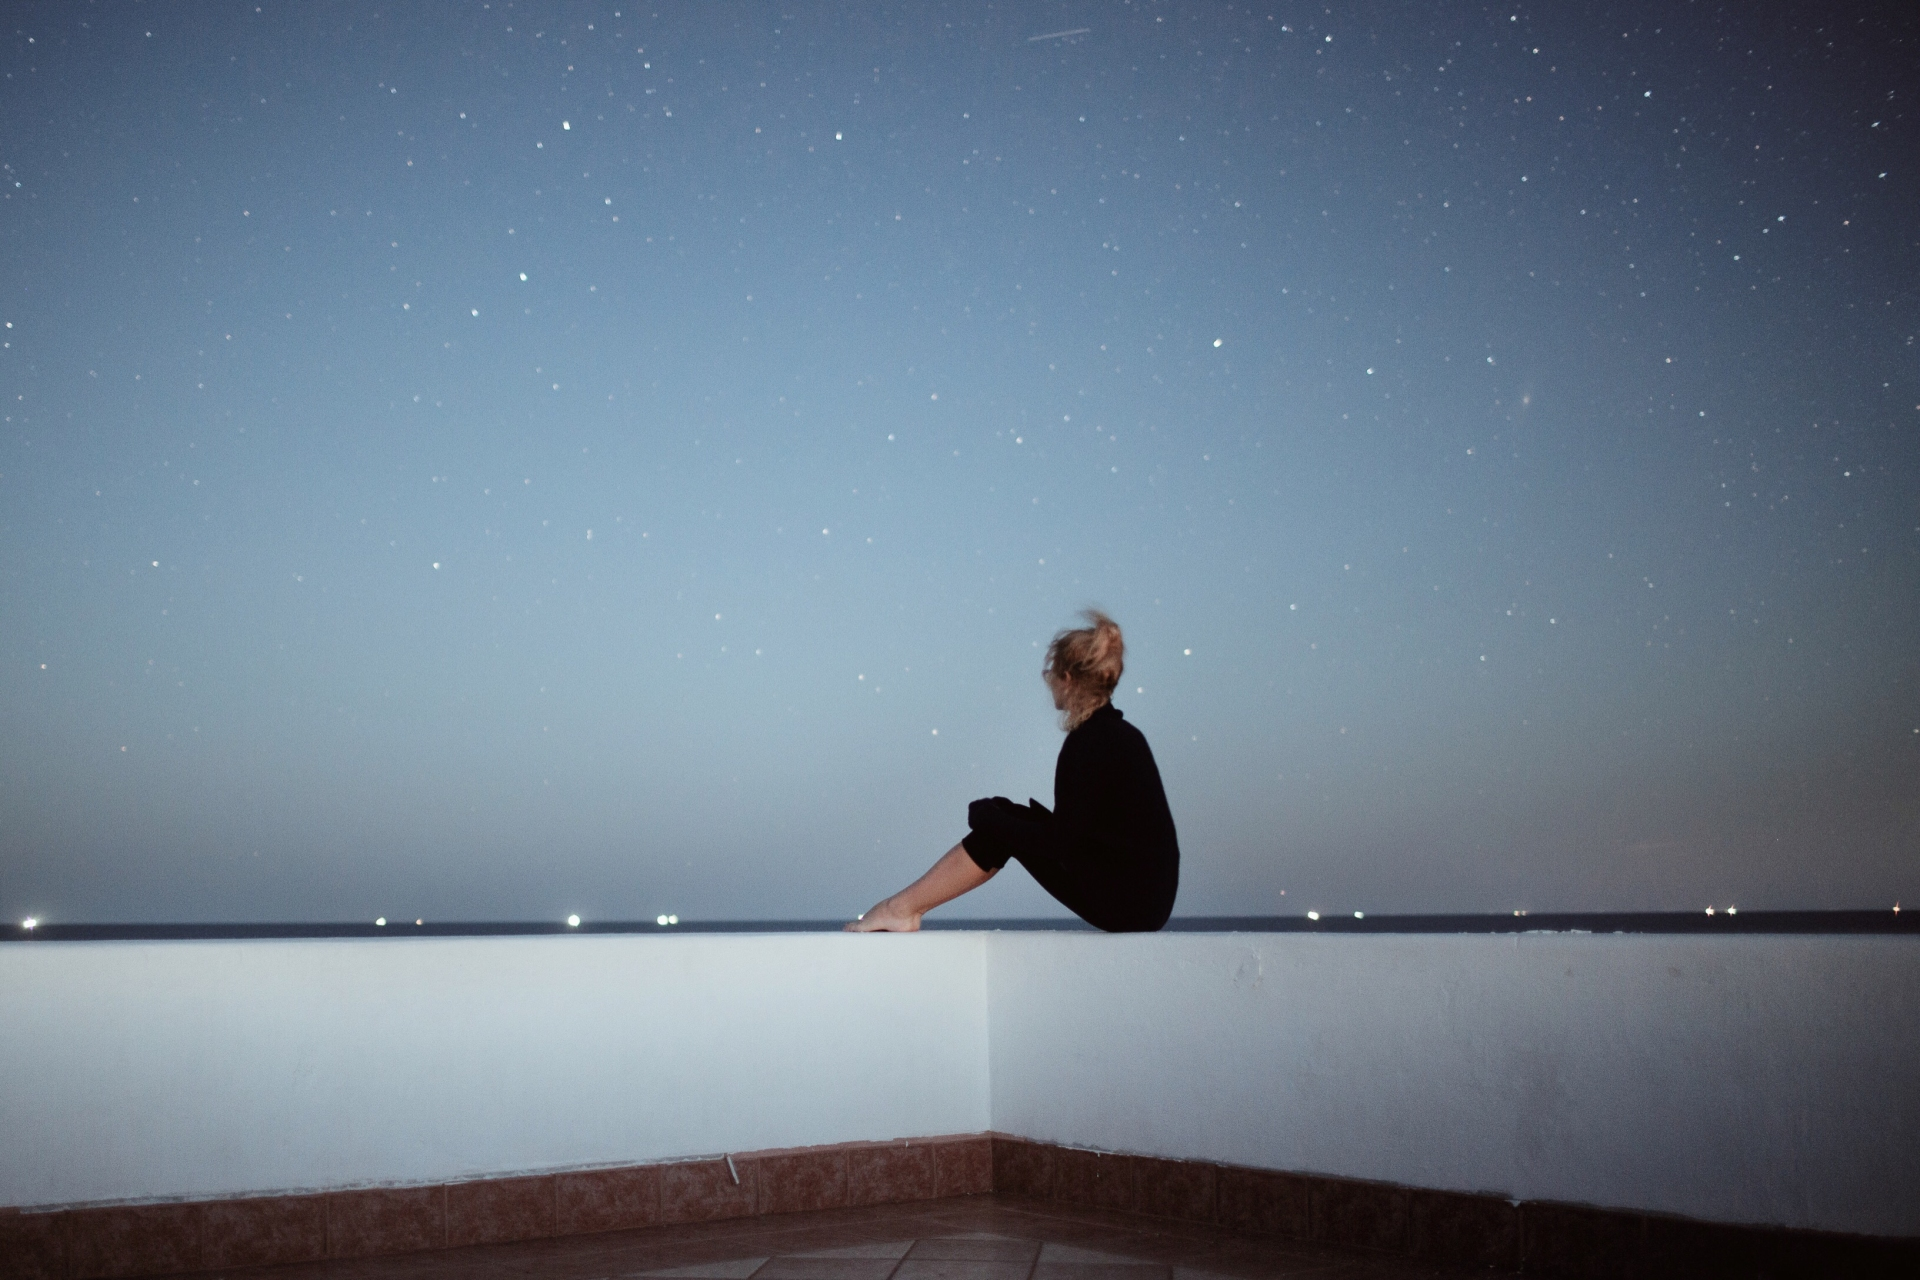 The Space Between Wanting Change And Not Being Ready To Let Go